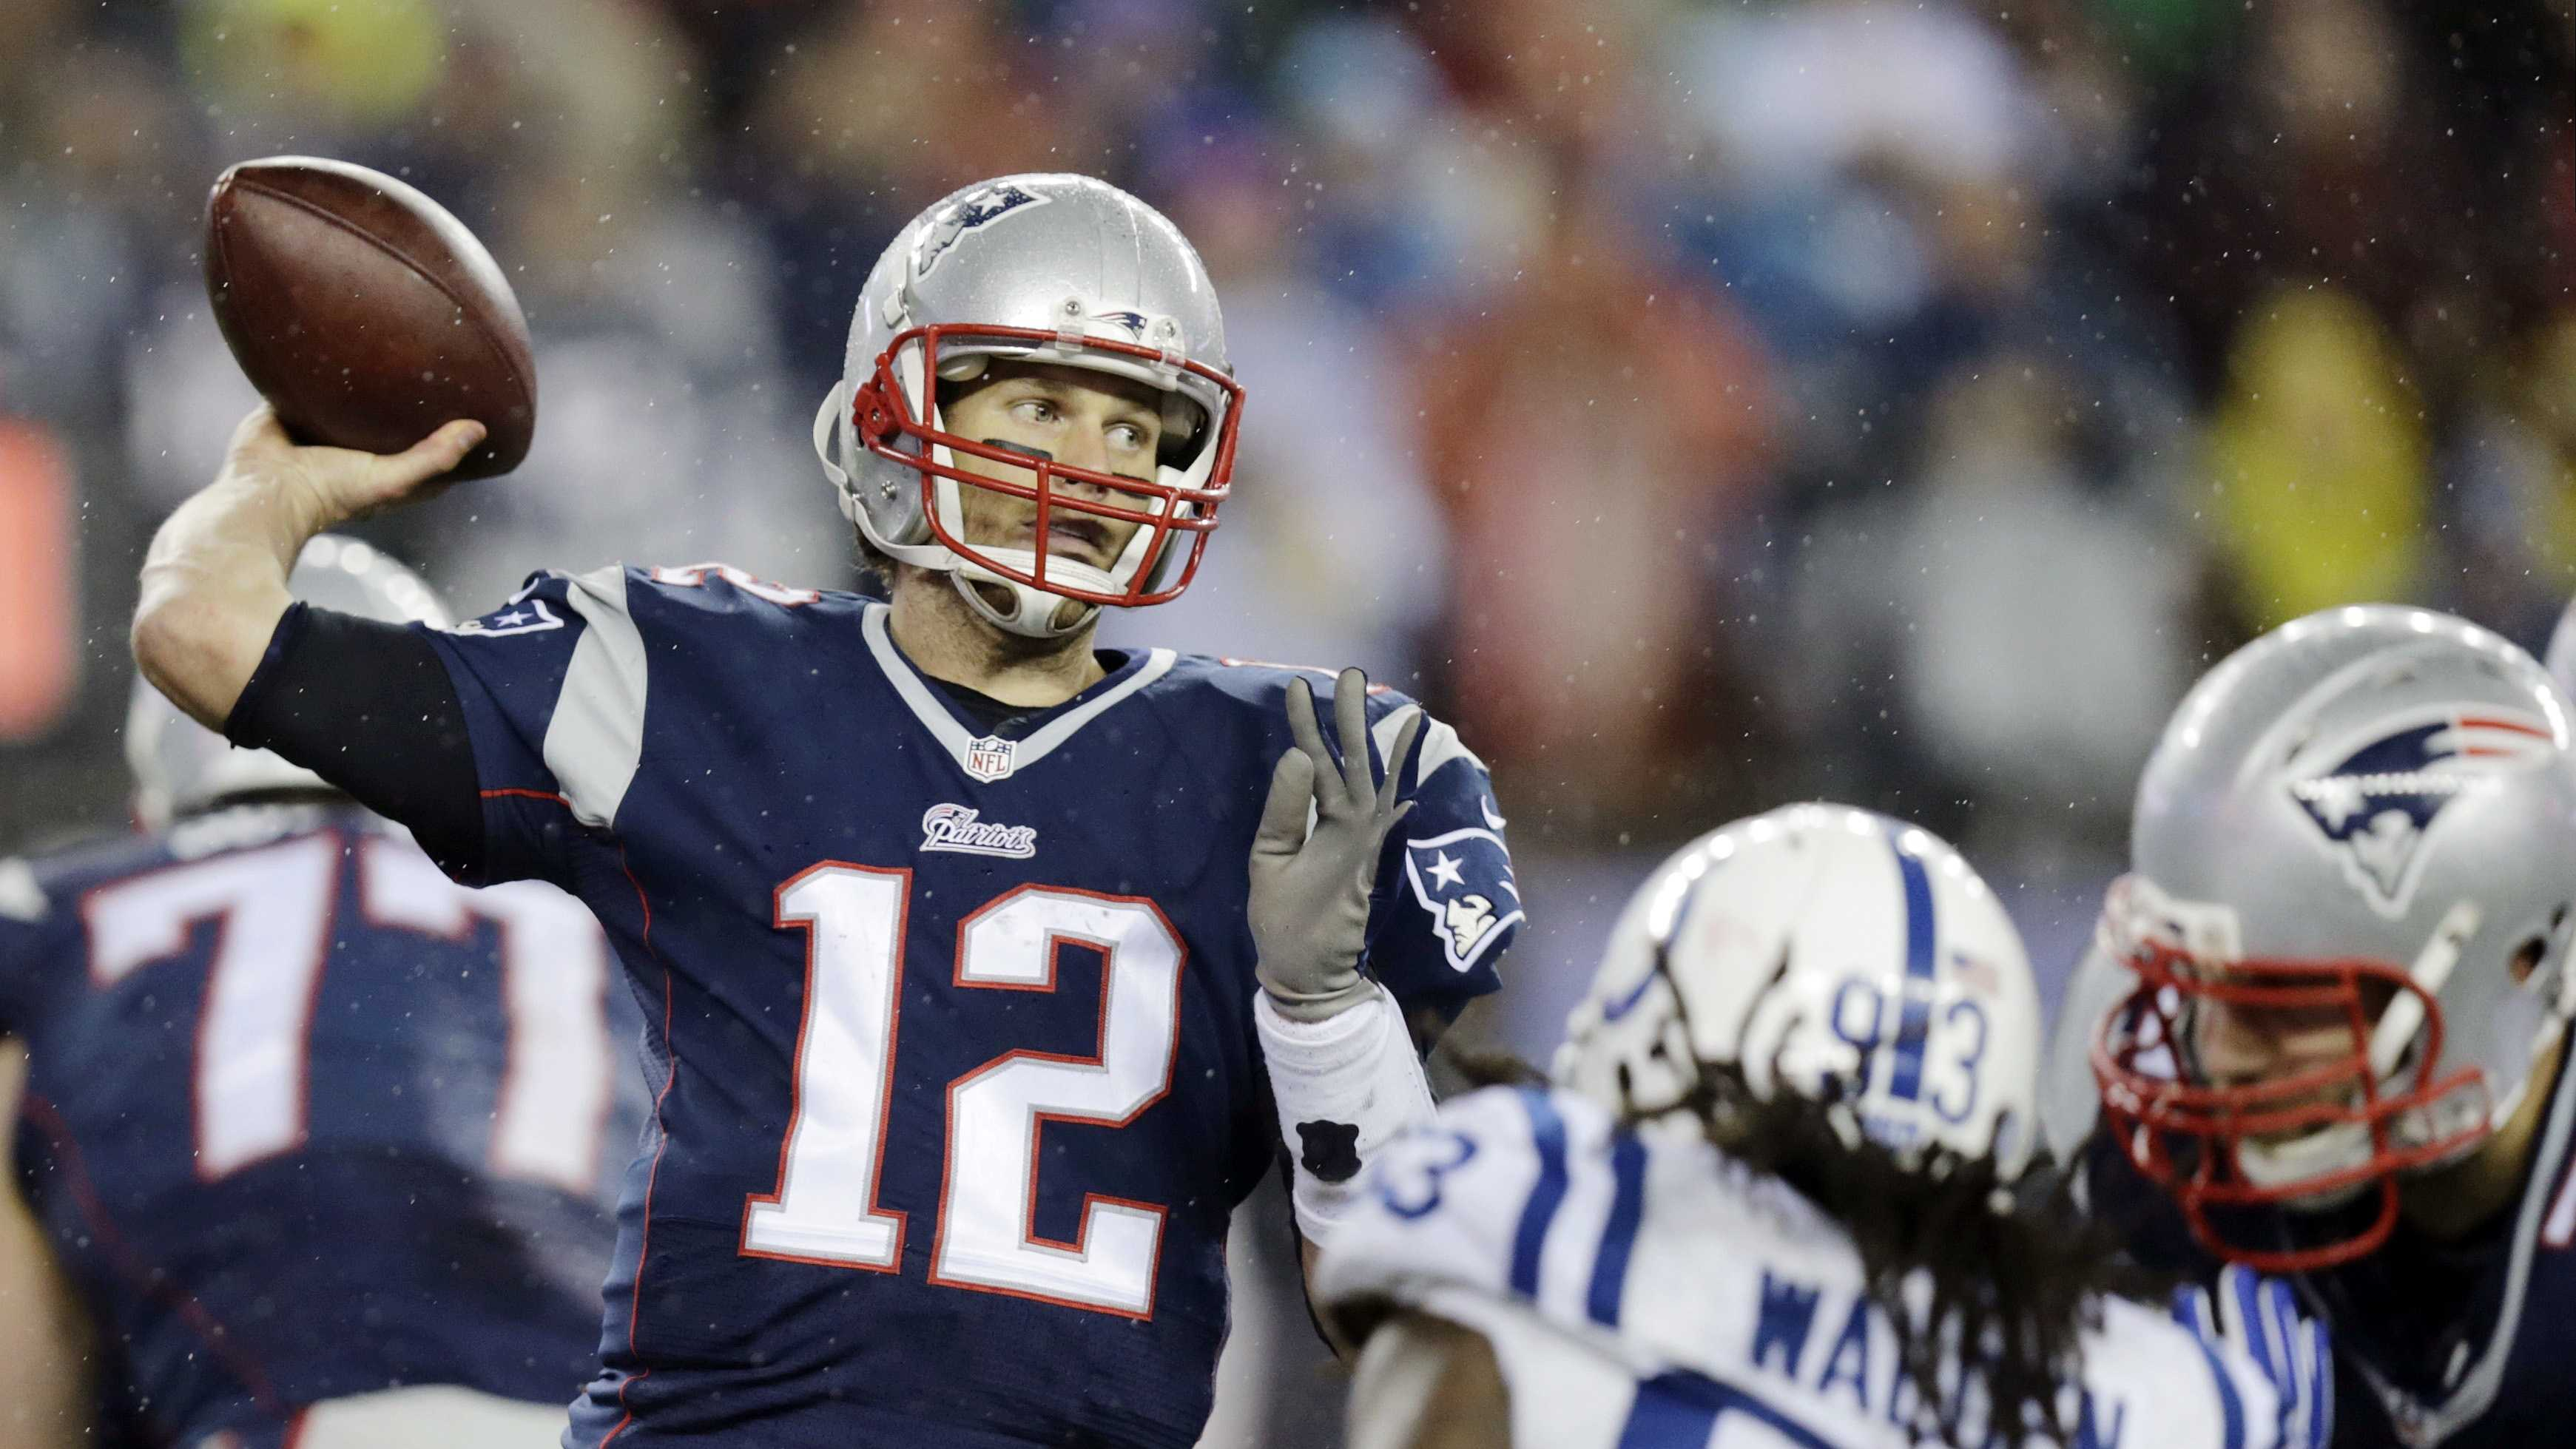 New England Patriots quarterback Tom Brady (12) passes against the Indianapolis Colts during the second half of the NFL football AFC Championship game Sunday, Jan. 18, 2015, in Foxborough, Mass.